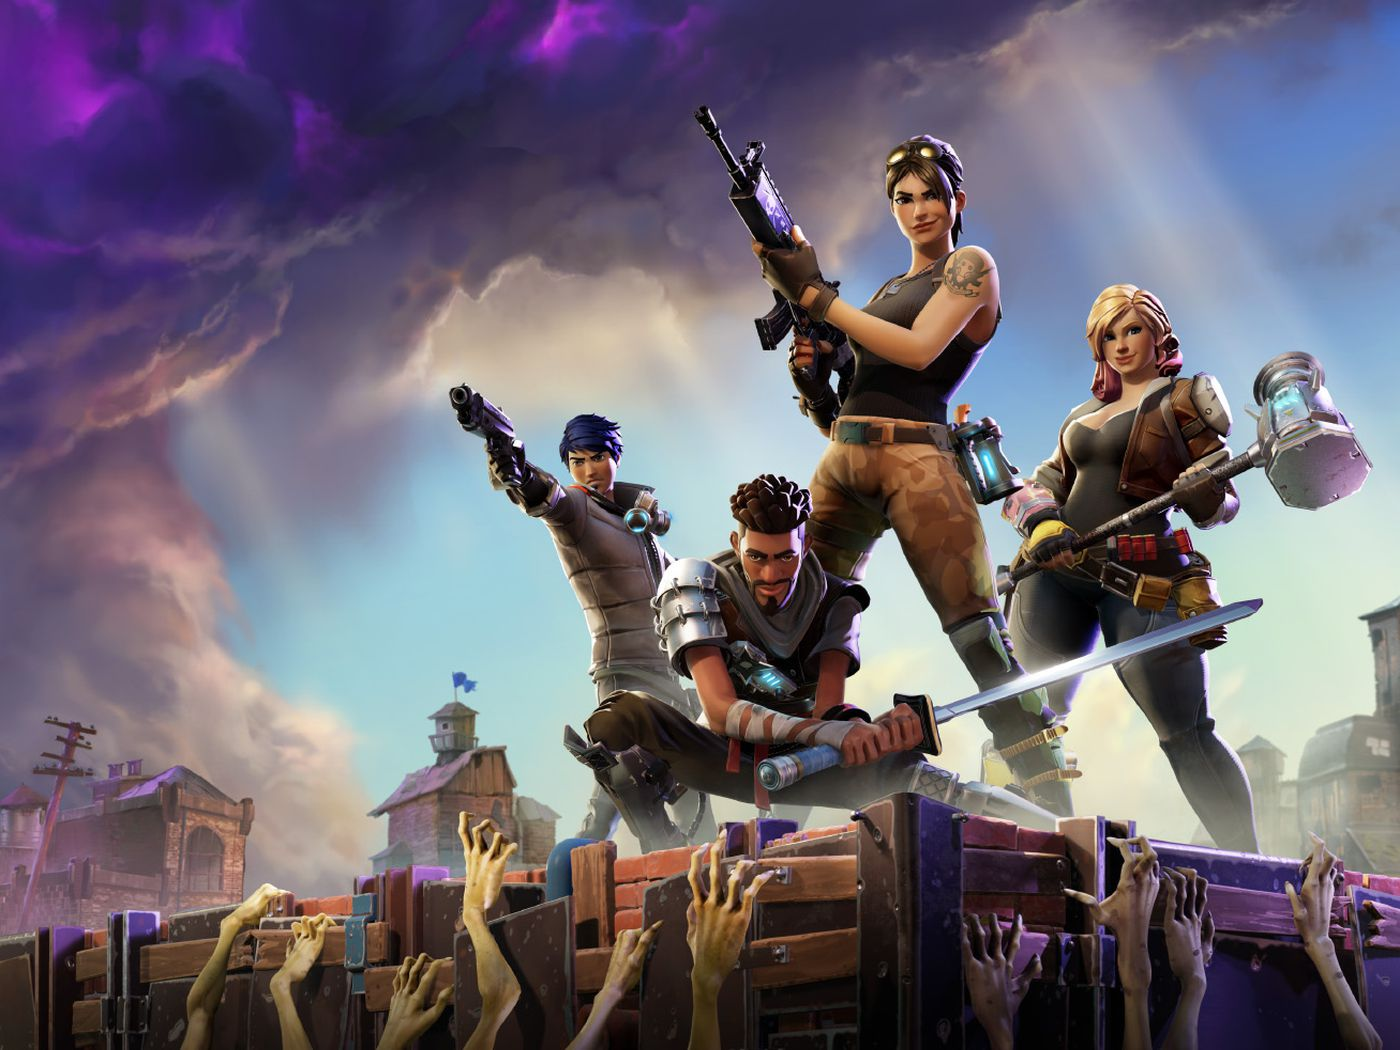 fortnite s community is already at odds over loot crates update polygon - medbot fortnite mission